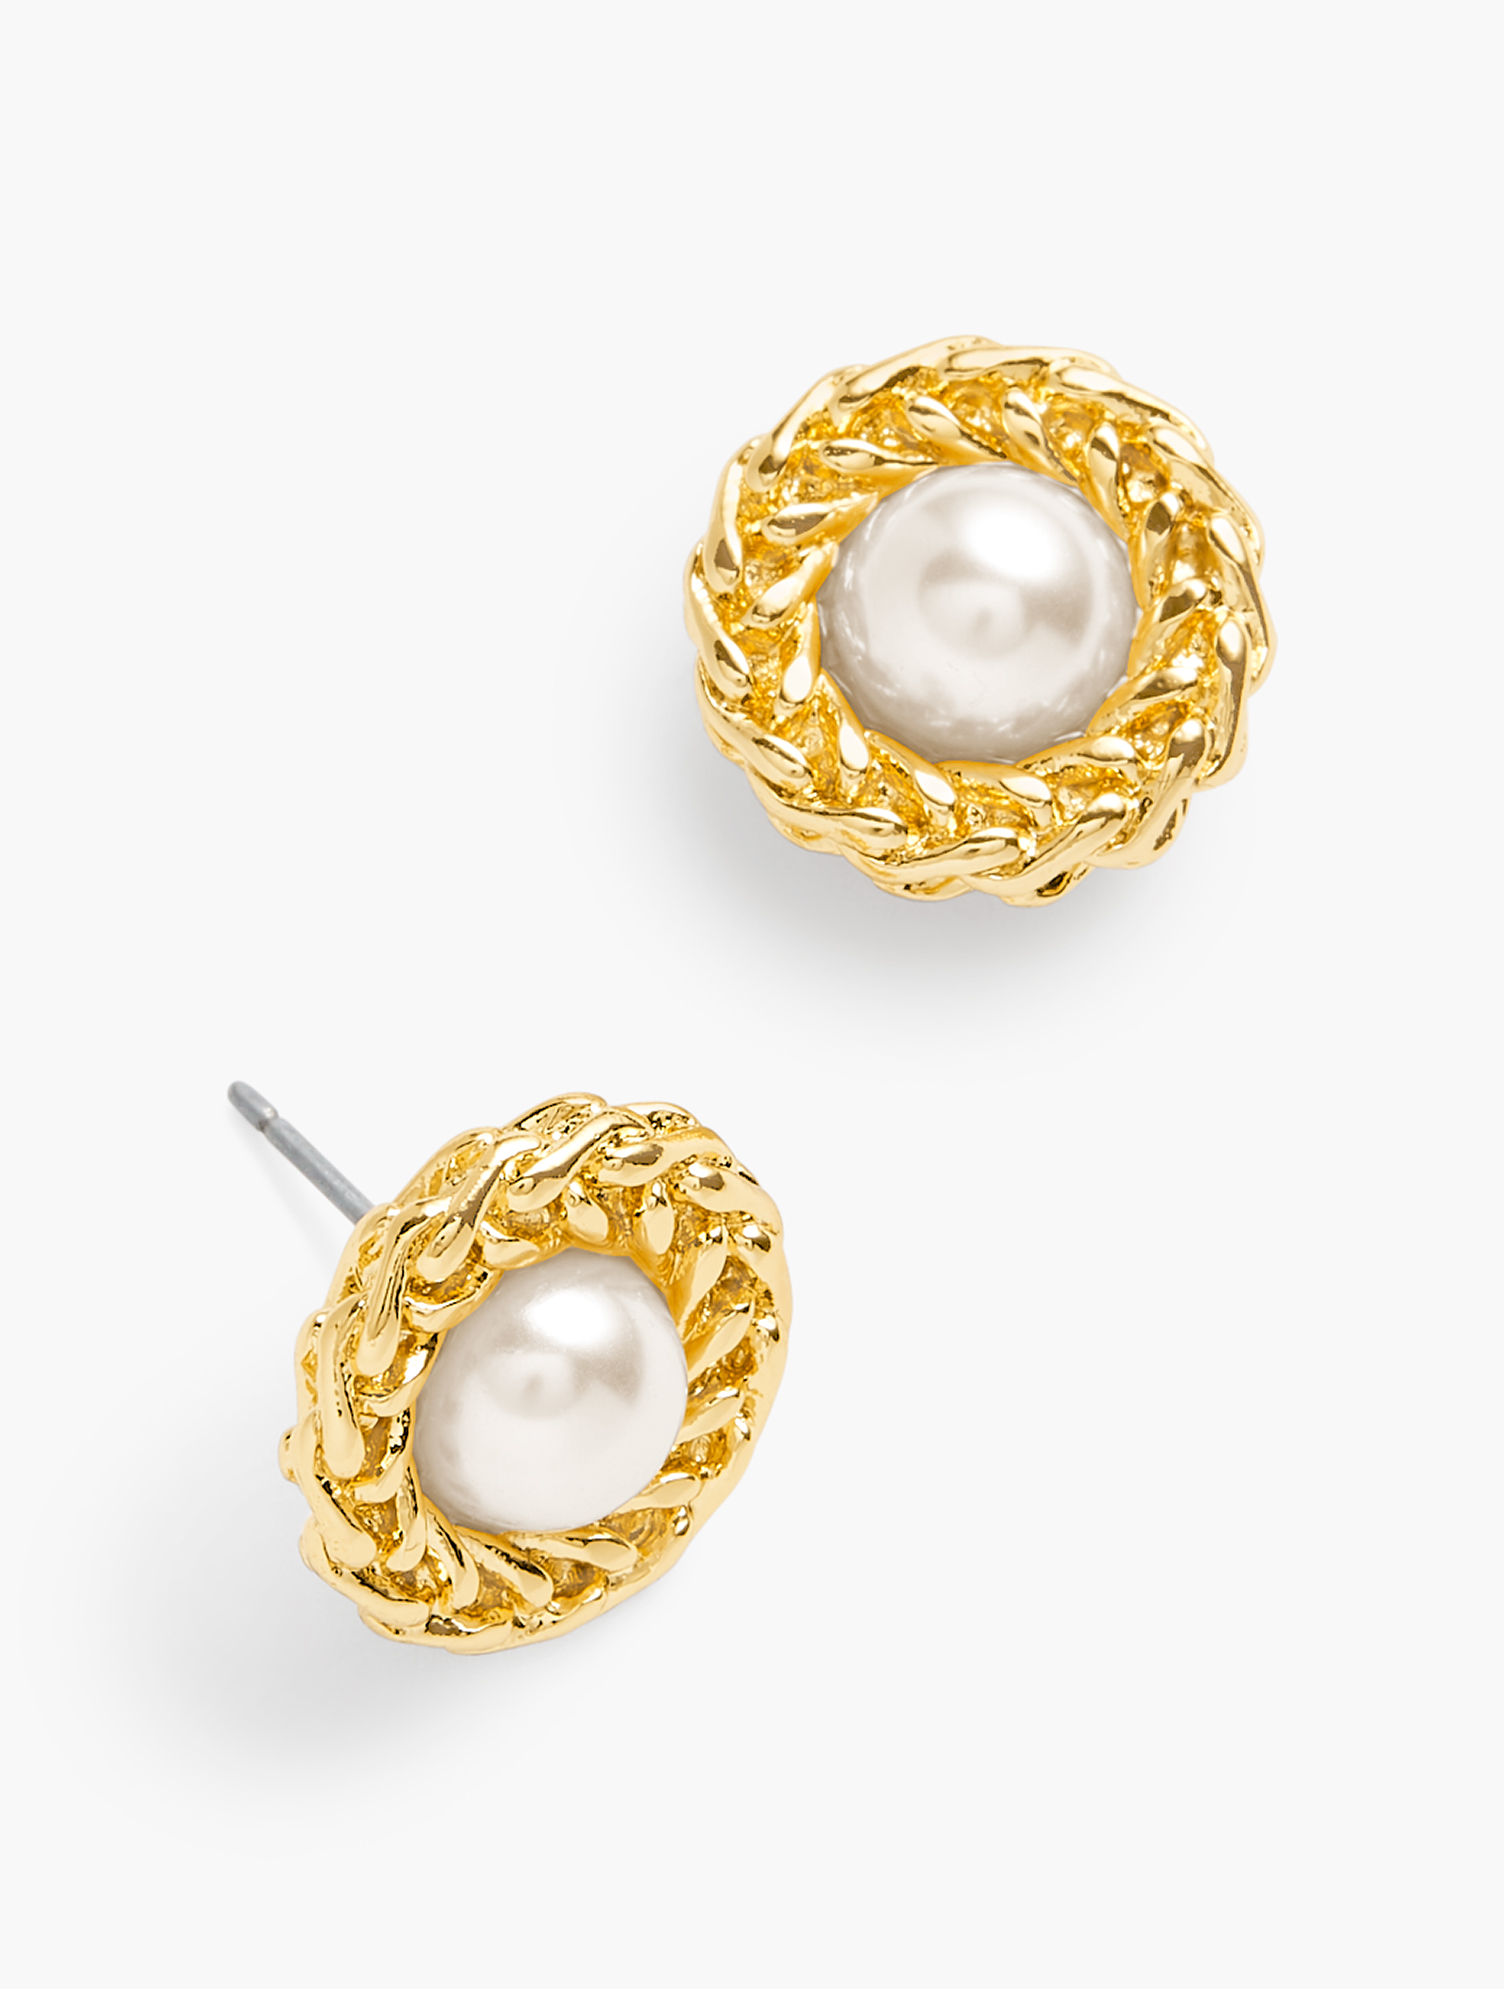 Vintage Style Jewelry, Retro Jewelry Gold Nest Pearl Earrings - IVORY-PEARLGOLD - OS - Talbots $12.49 AT vintagedancer.com